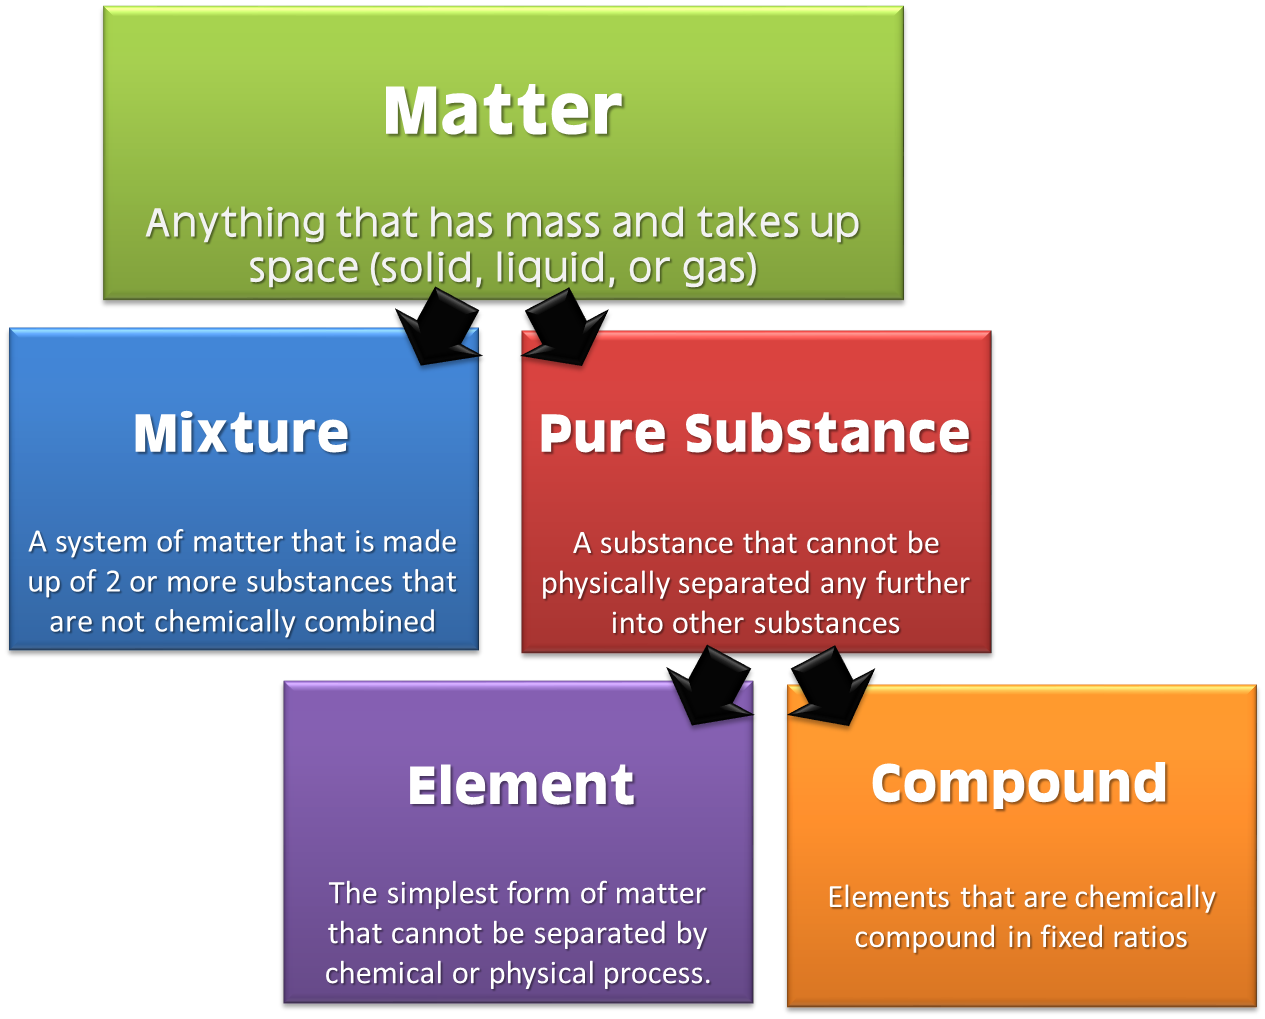 http://thescienceclassroom.org/chemistry-lessons/matter-2/classification-of-matter/